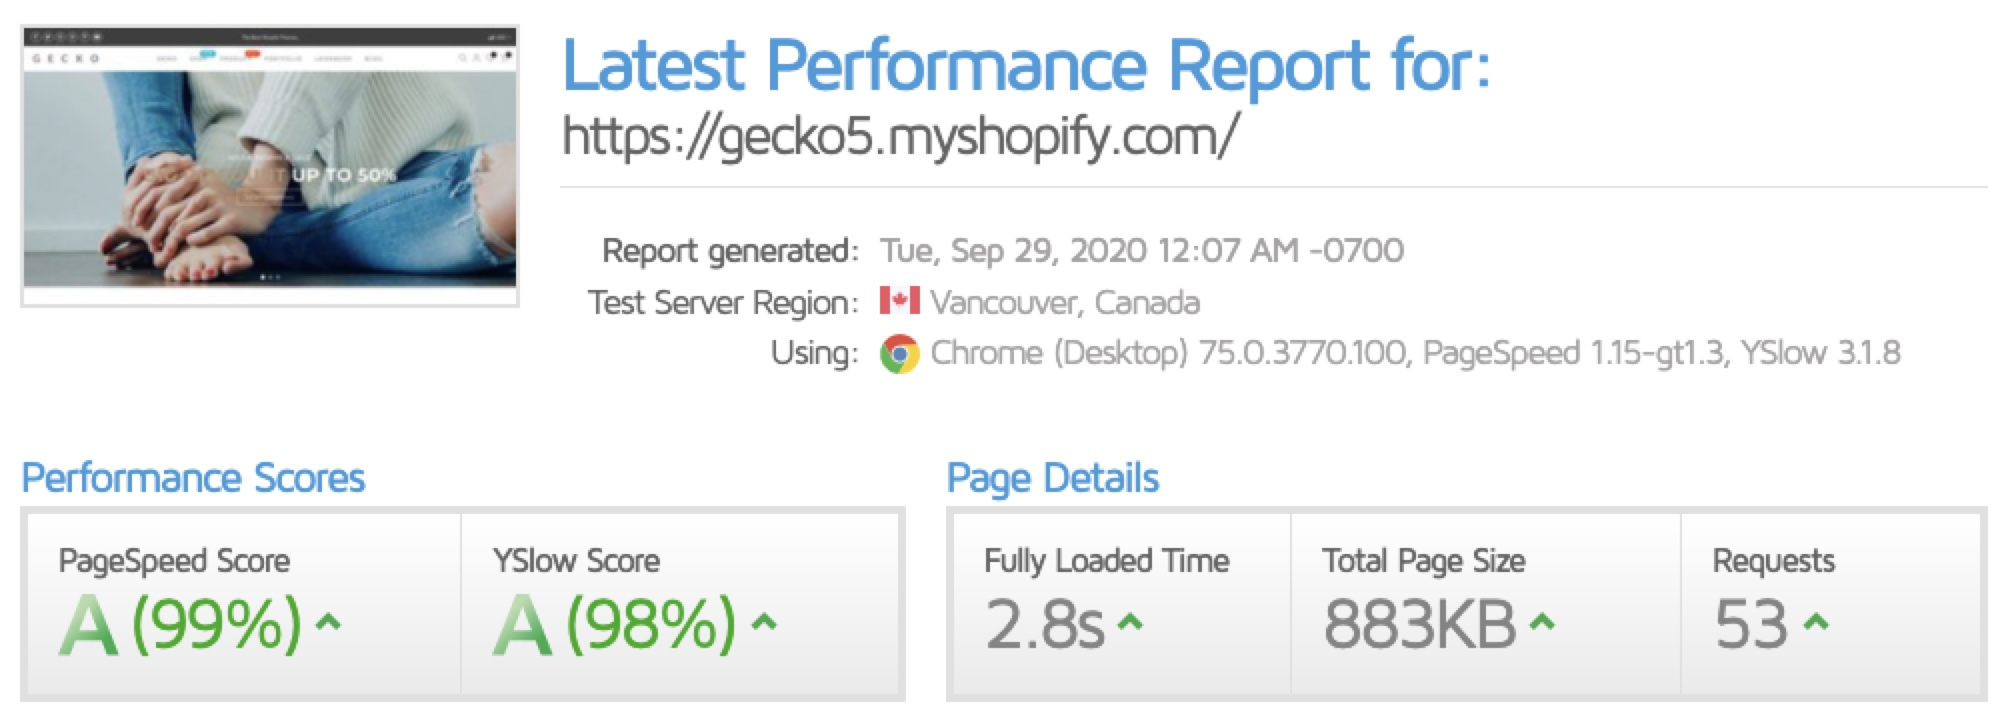 gecko speed - Gecko 5.0 - Responsive Shopify Theme - RTL support